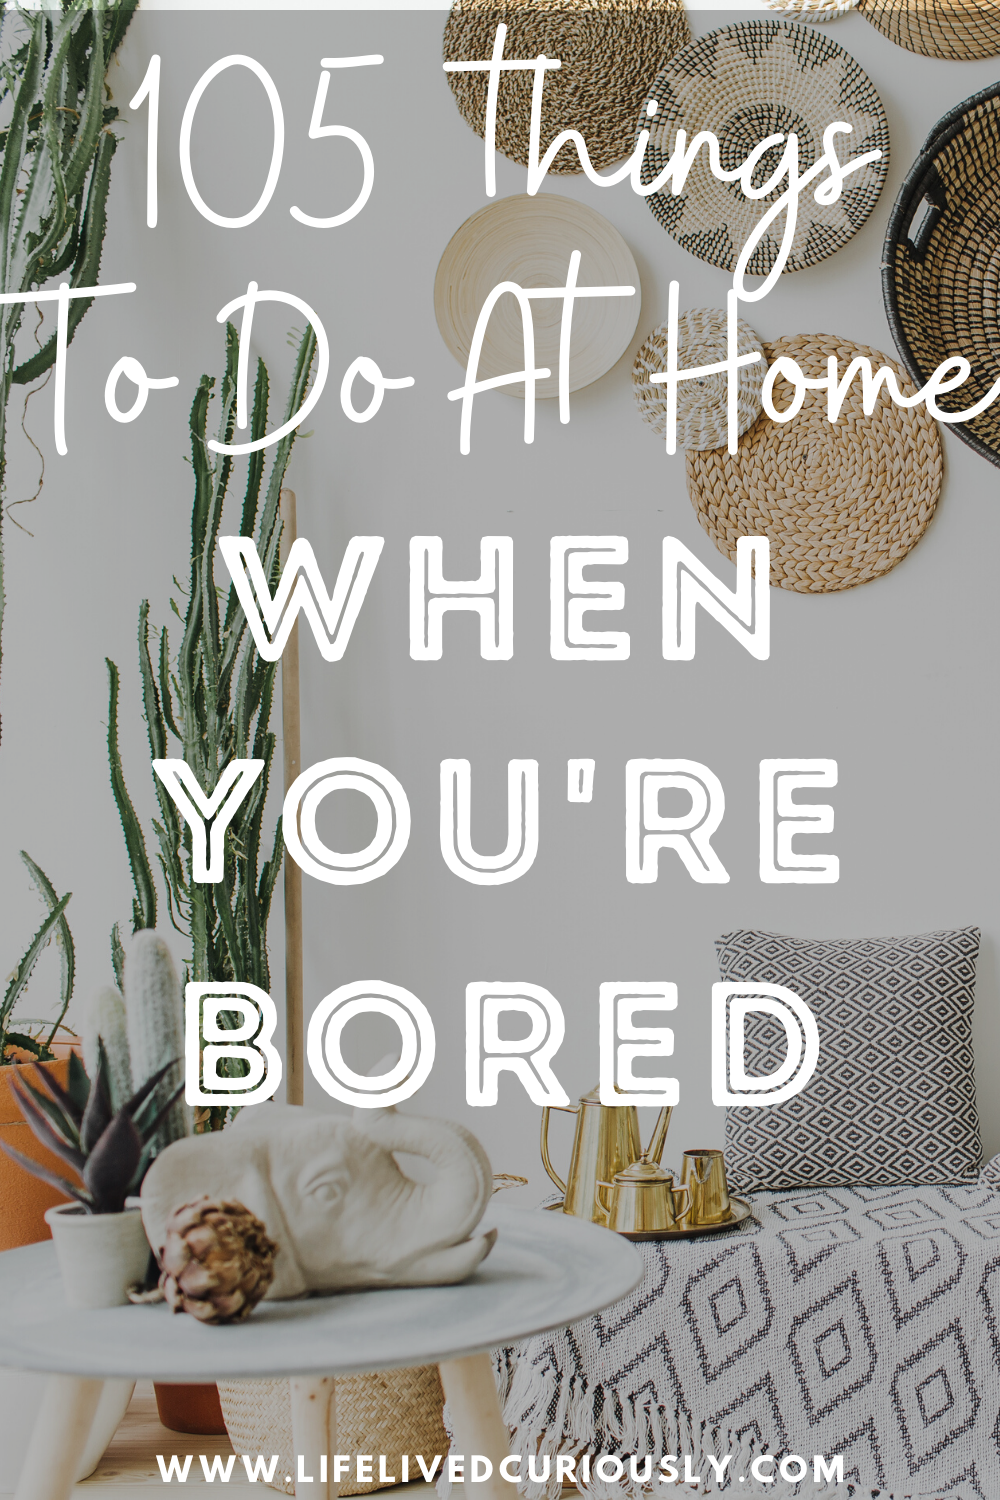 105 Things To Do At Home When You're Bored in 2020   Things to do at home, Things to do, Ad home